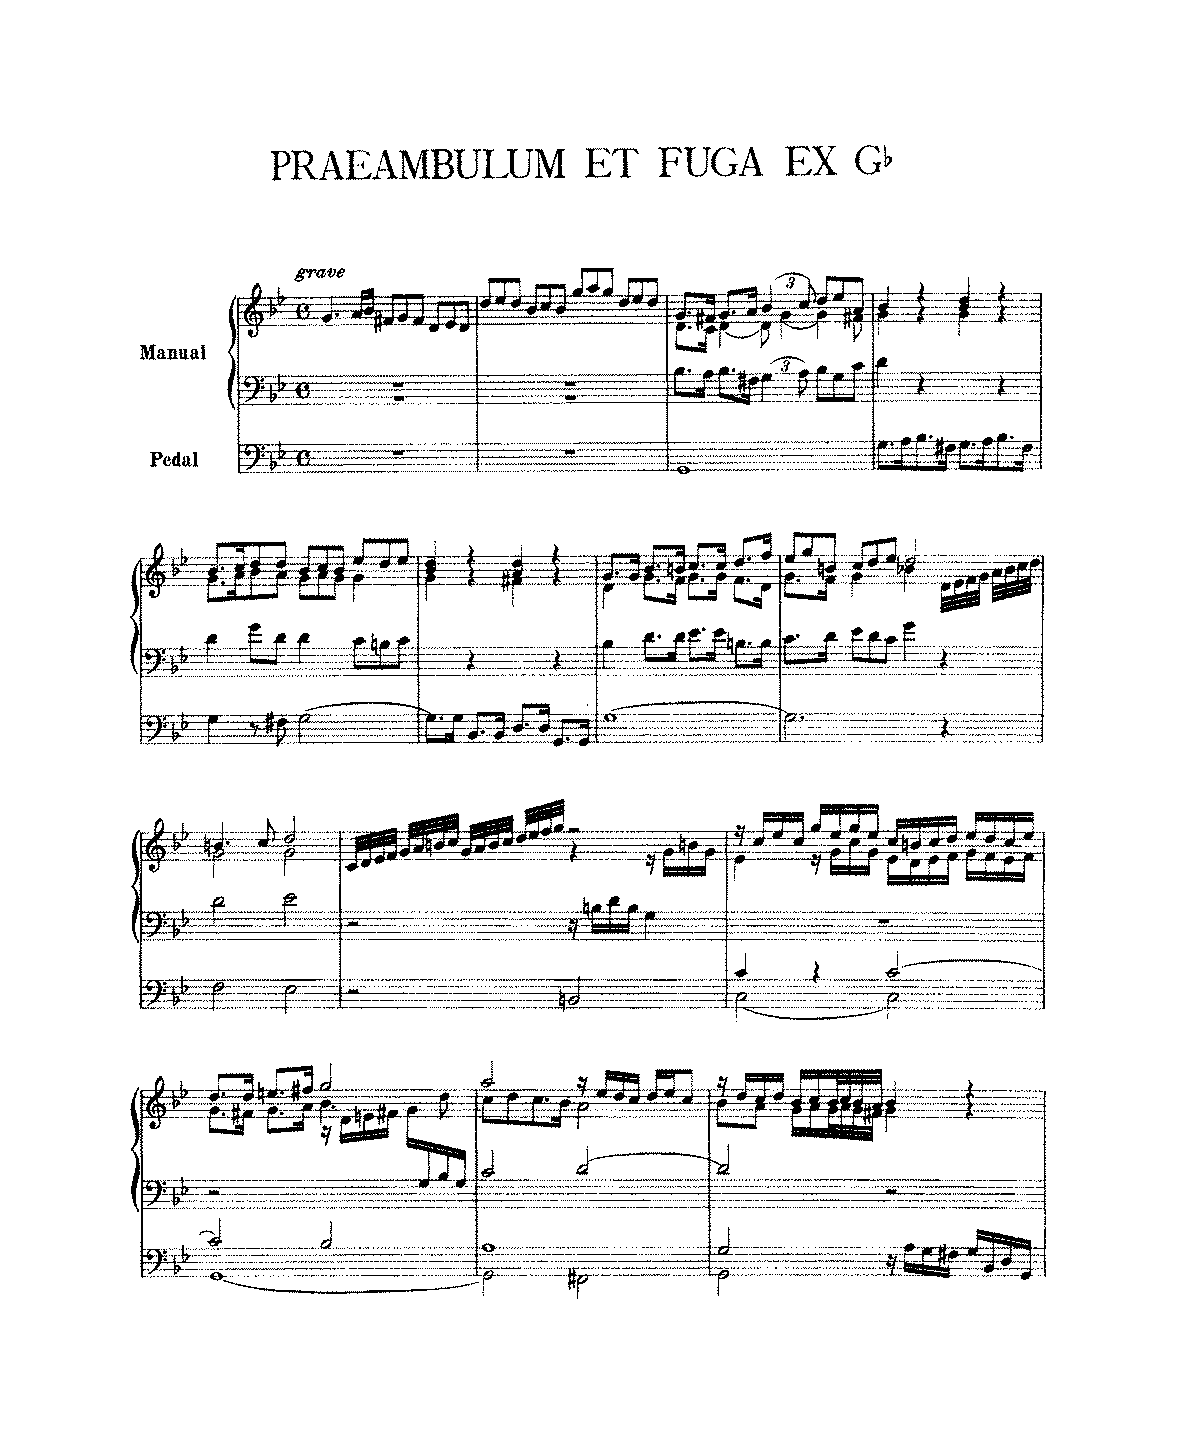 Lubeck - Preambulum et fuga in g minor.pdf